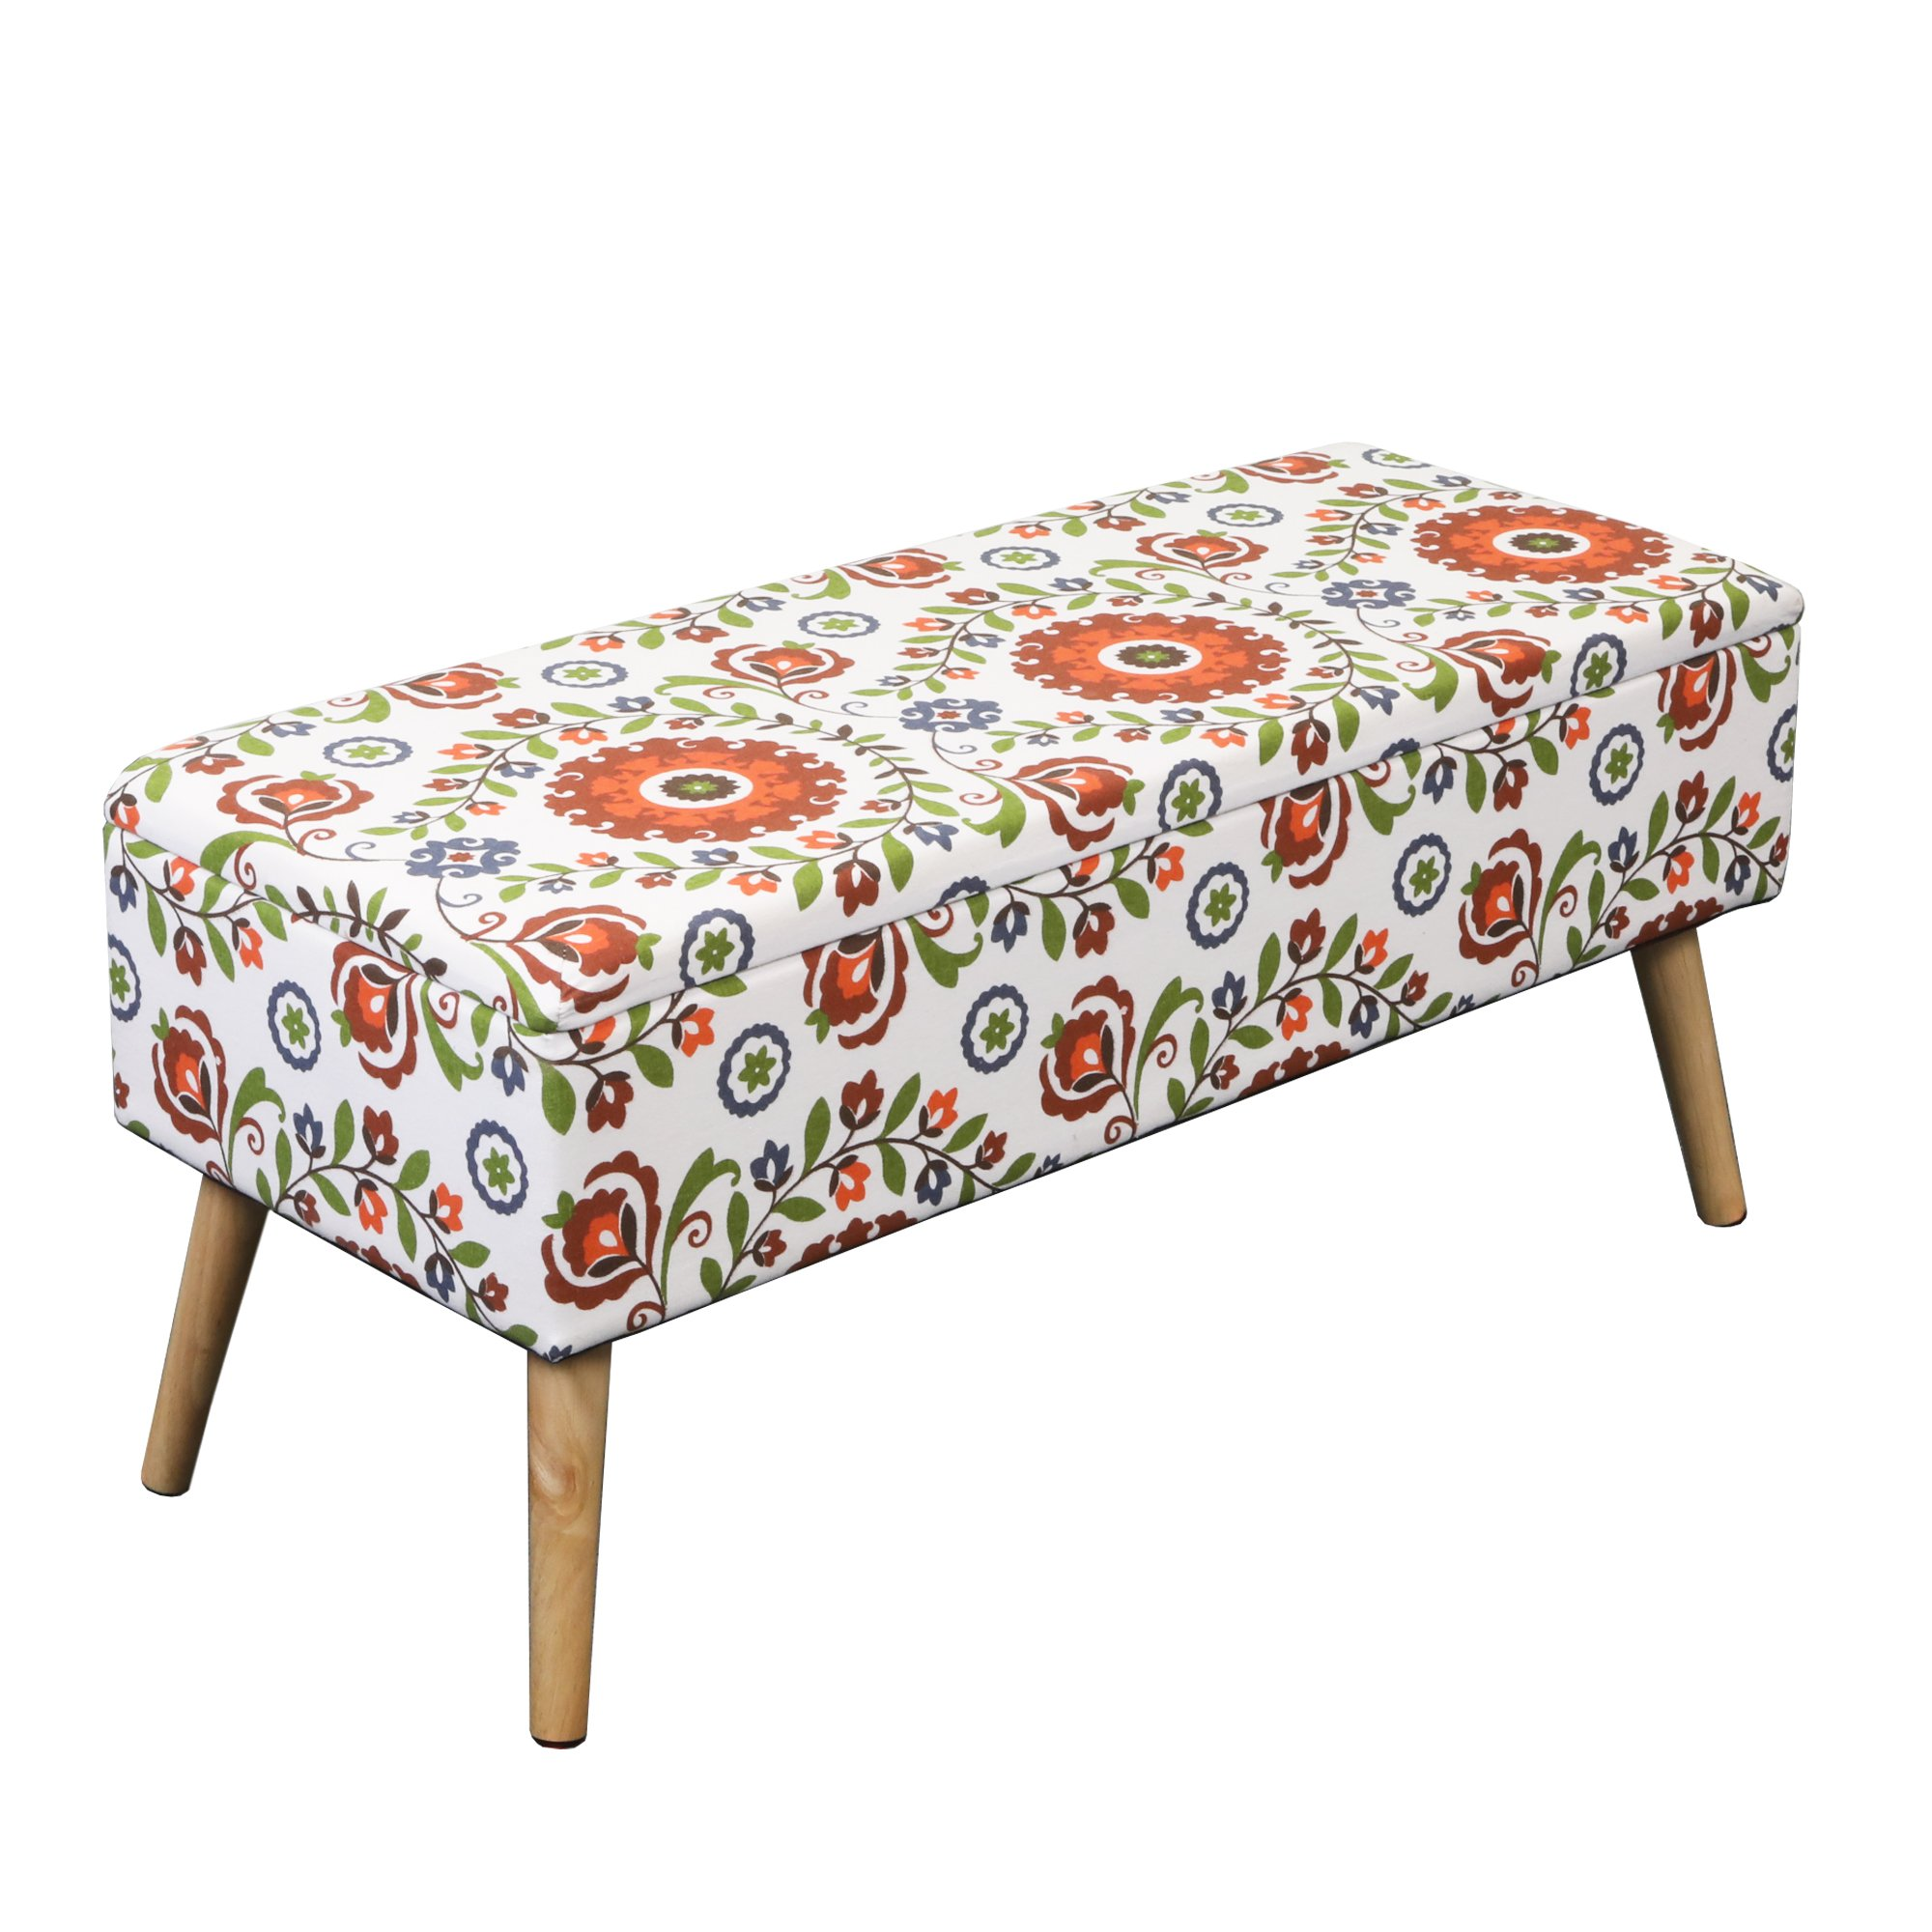 Fabulous Details About Otto Ben 37 In Easy Lift Top Upholstered Ottoman Storage Bench Retro Floral Squirreltailoven Fun Painted Chair Ideas Images Squirreltailovenorg